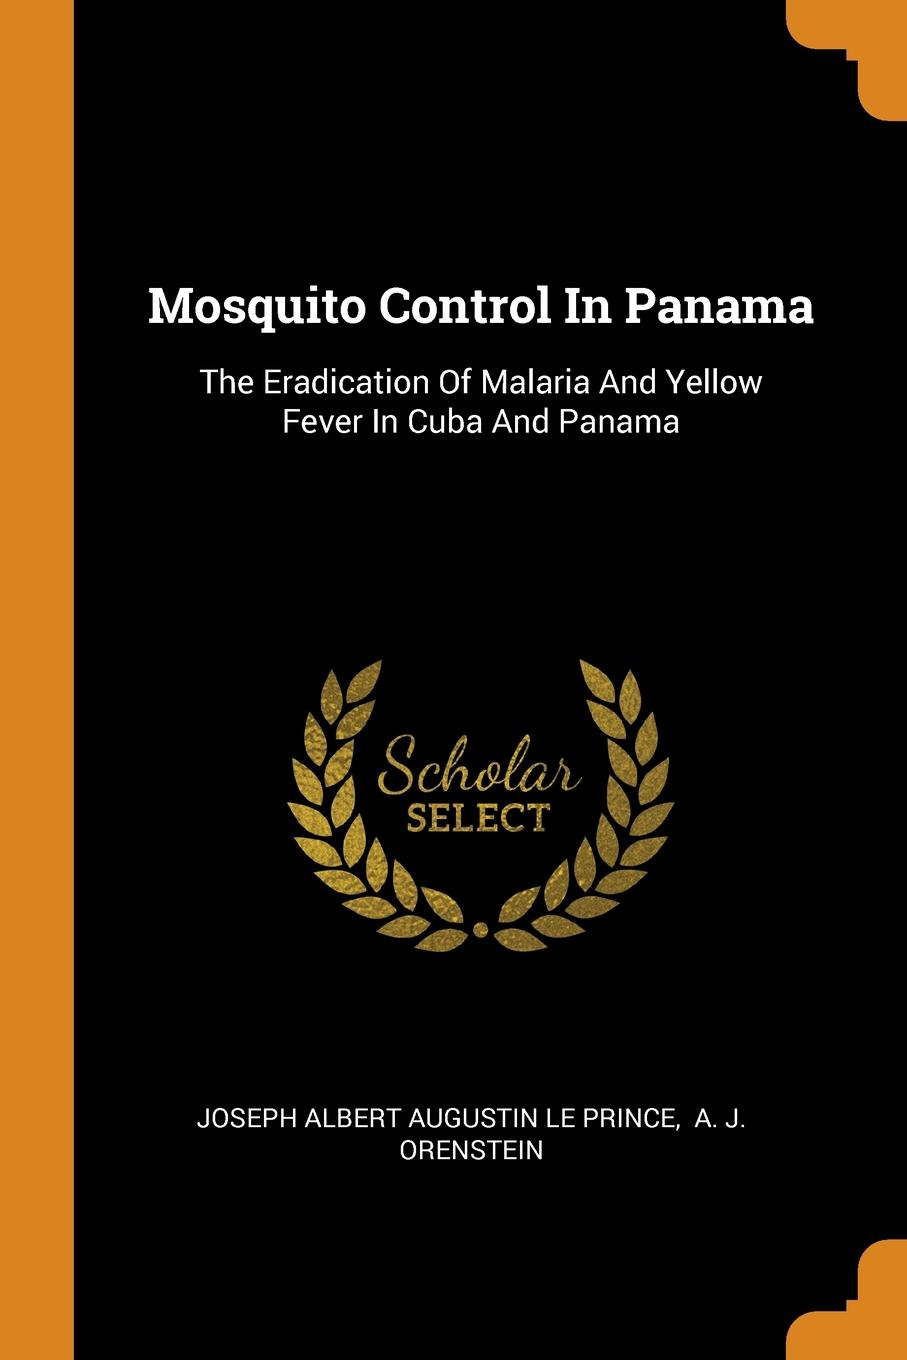 Mosquito Control In Panama. The Eradication Of Malaria And Yellow Fever In Cuba And Panama